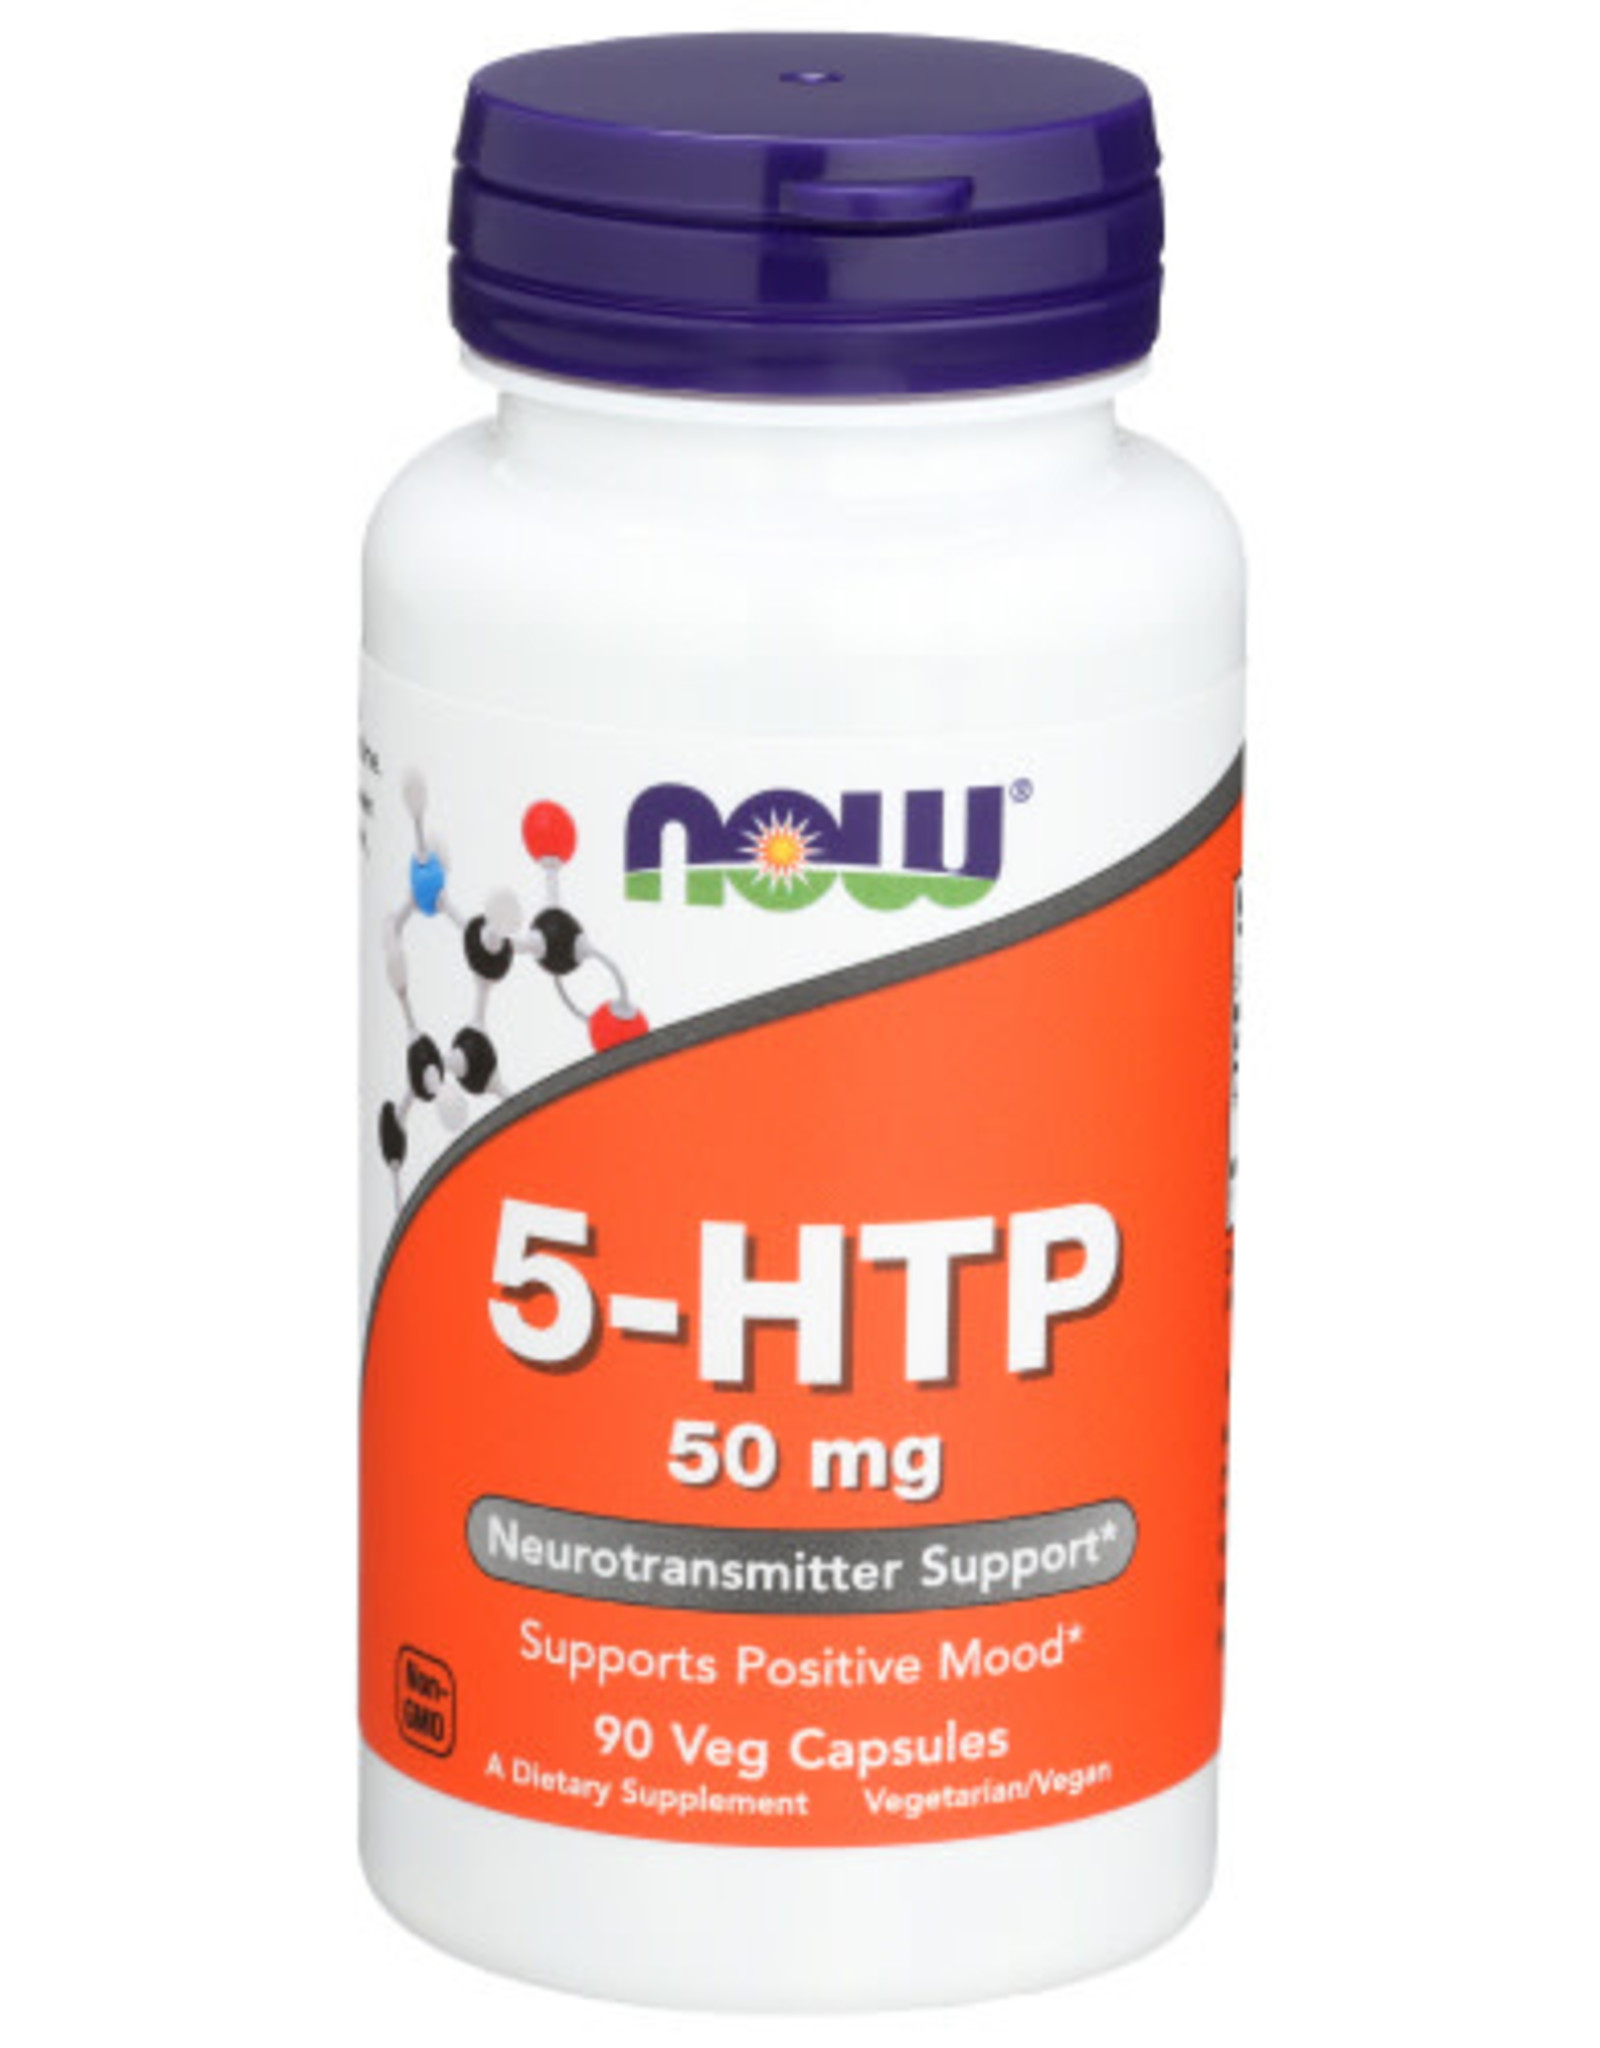 NOW FOODS NOW FOODS 5-HTP 50 MG, 30 CAPSULES